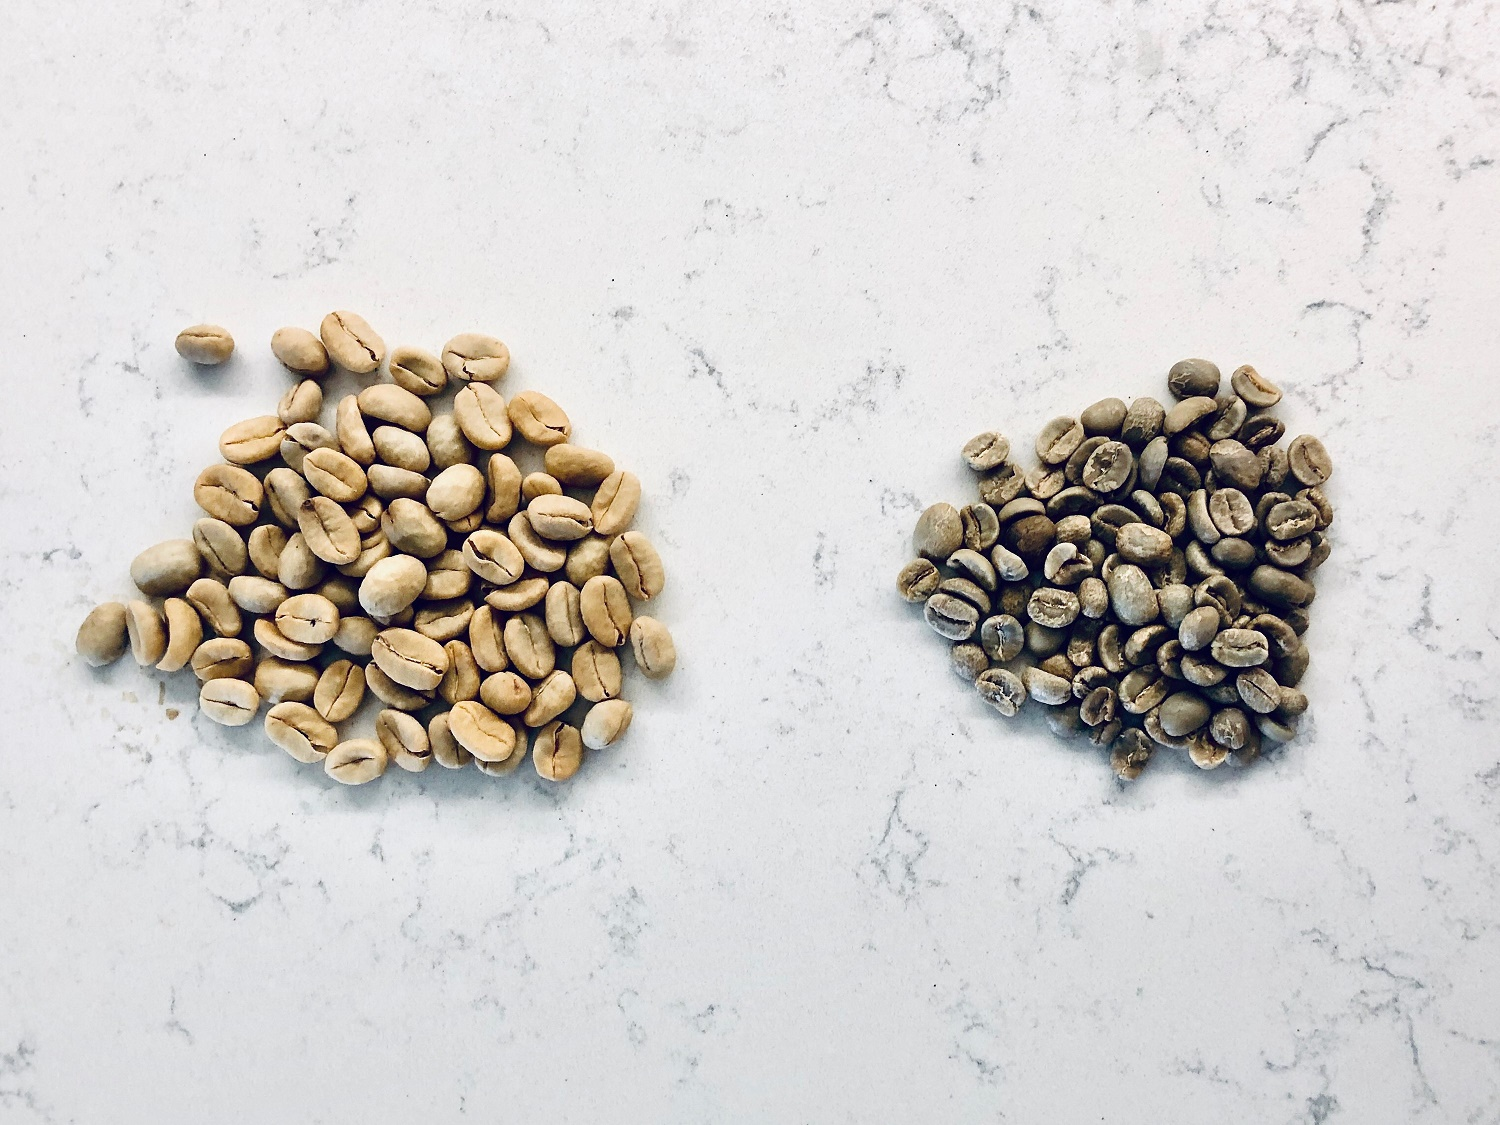 Pergamino (left) and green coffee (right)